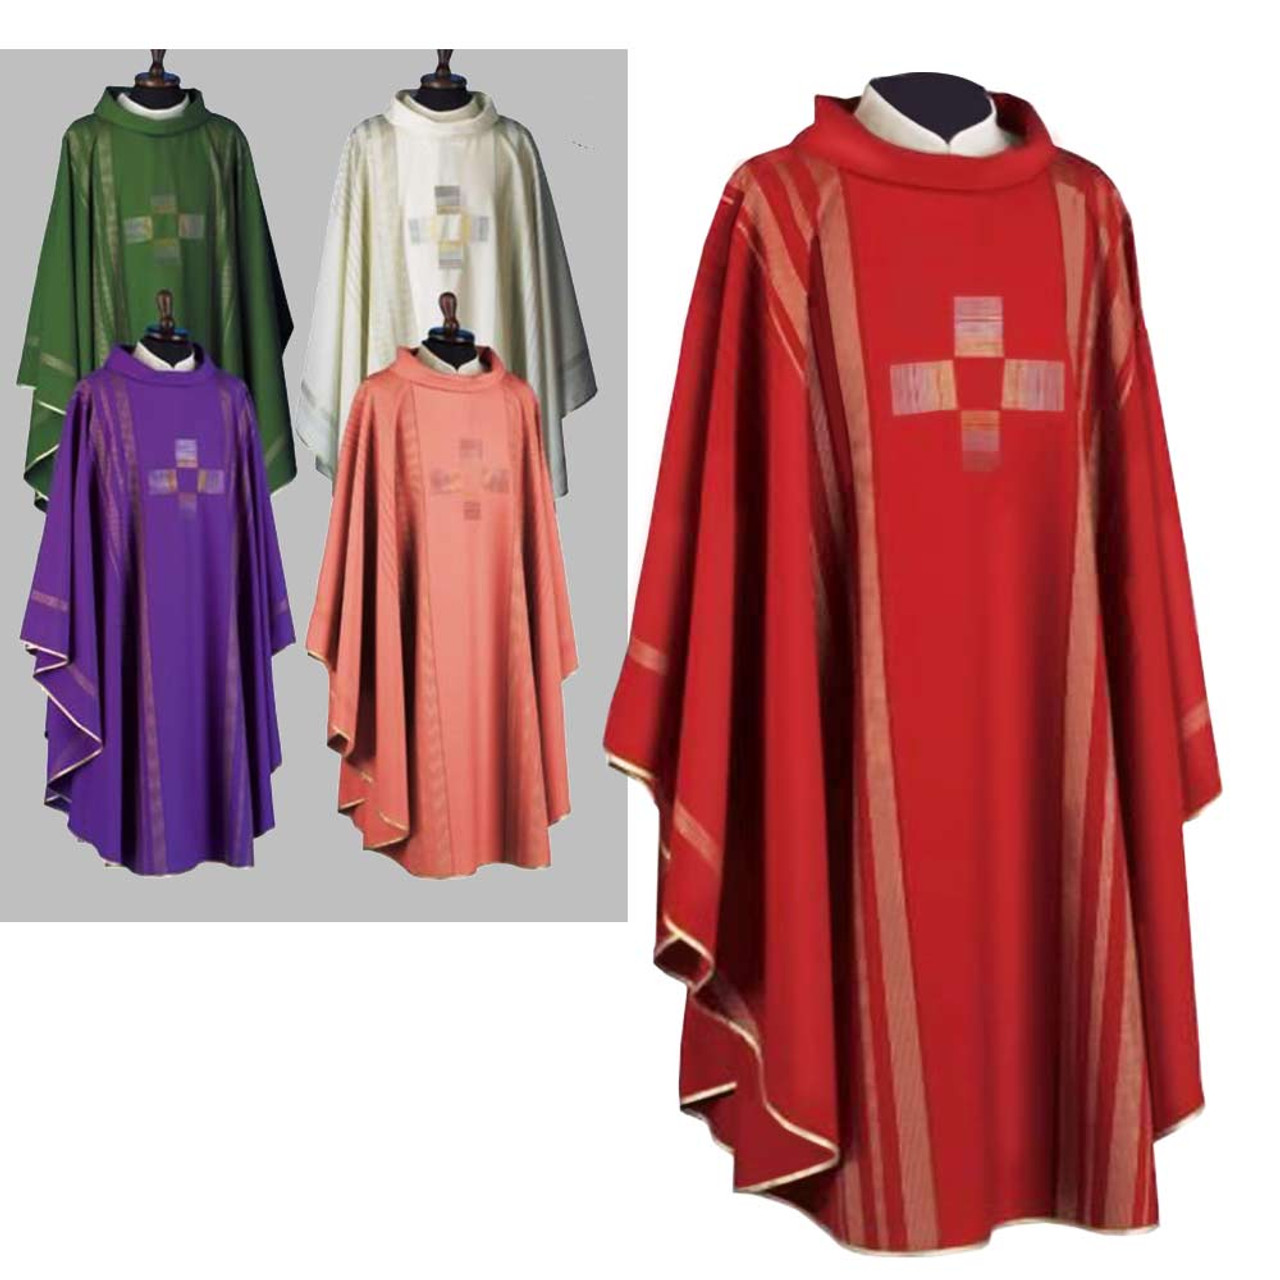 860 Red Chasuble in Linea from Solivari